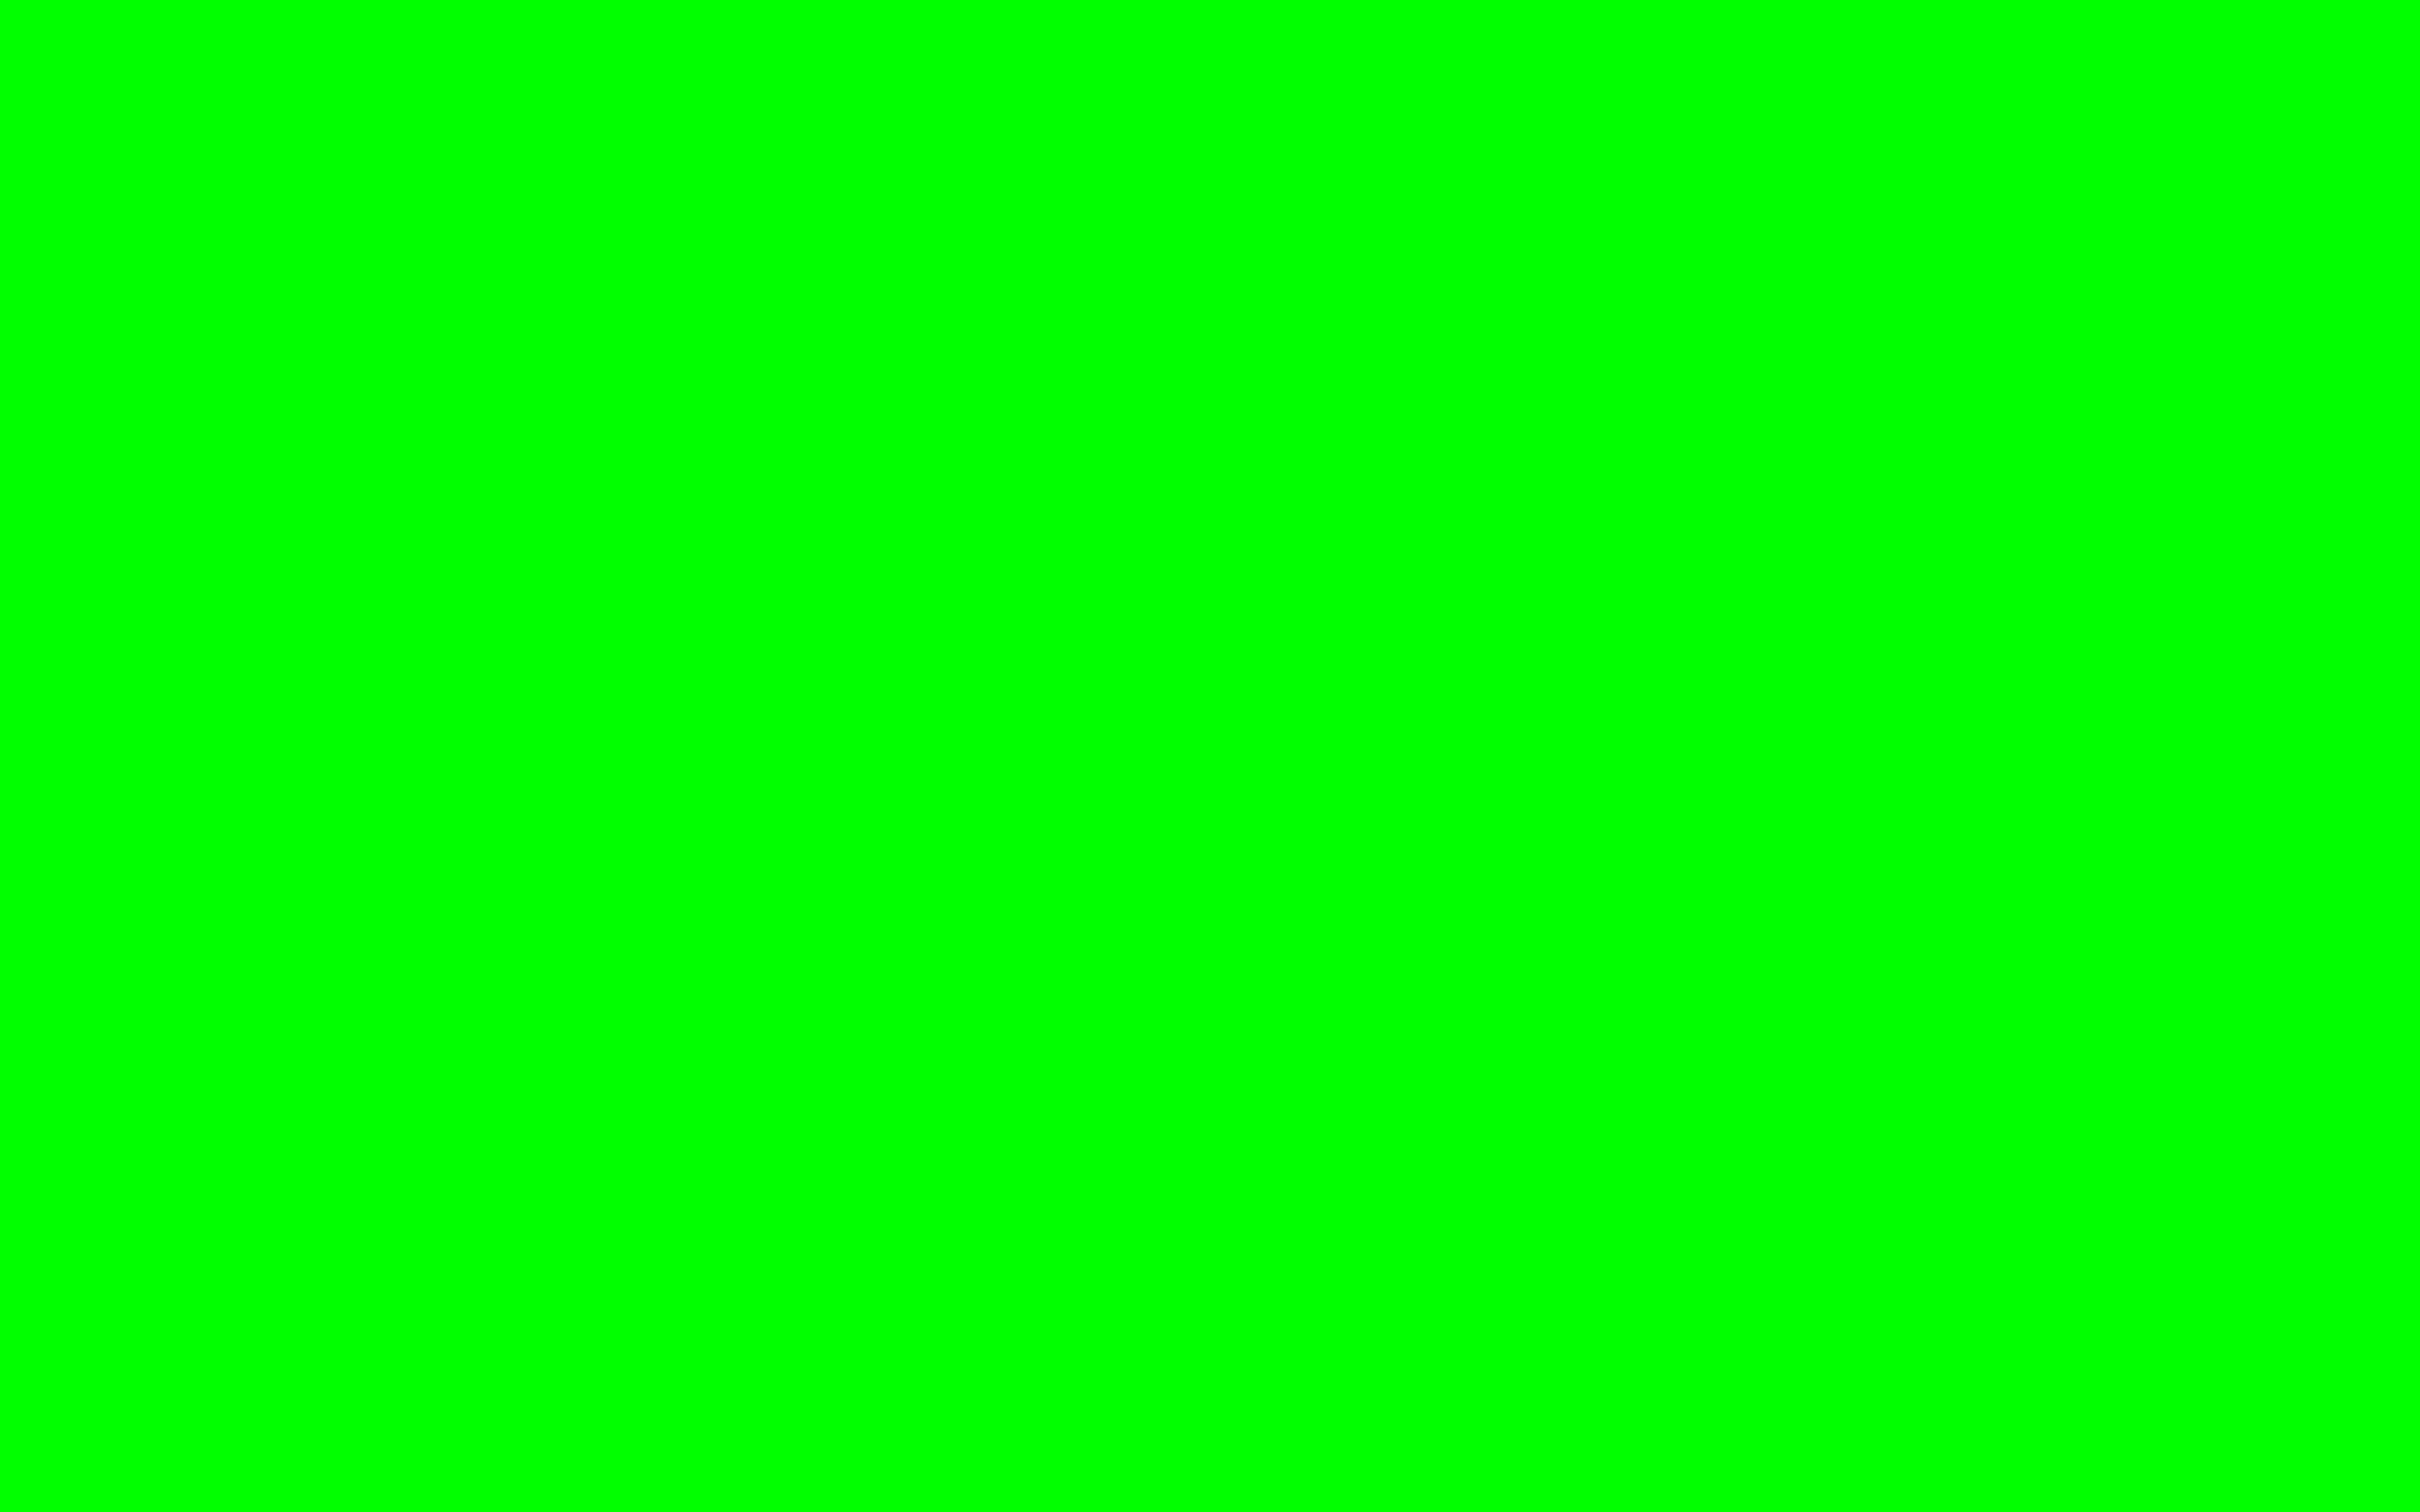 2560x1600 Green X11 Gui Green Solid Color Background